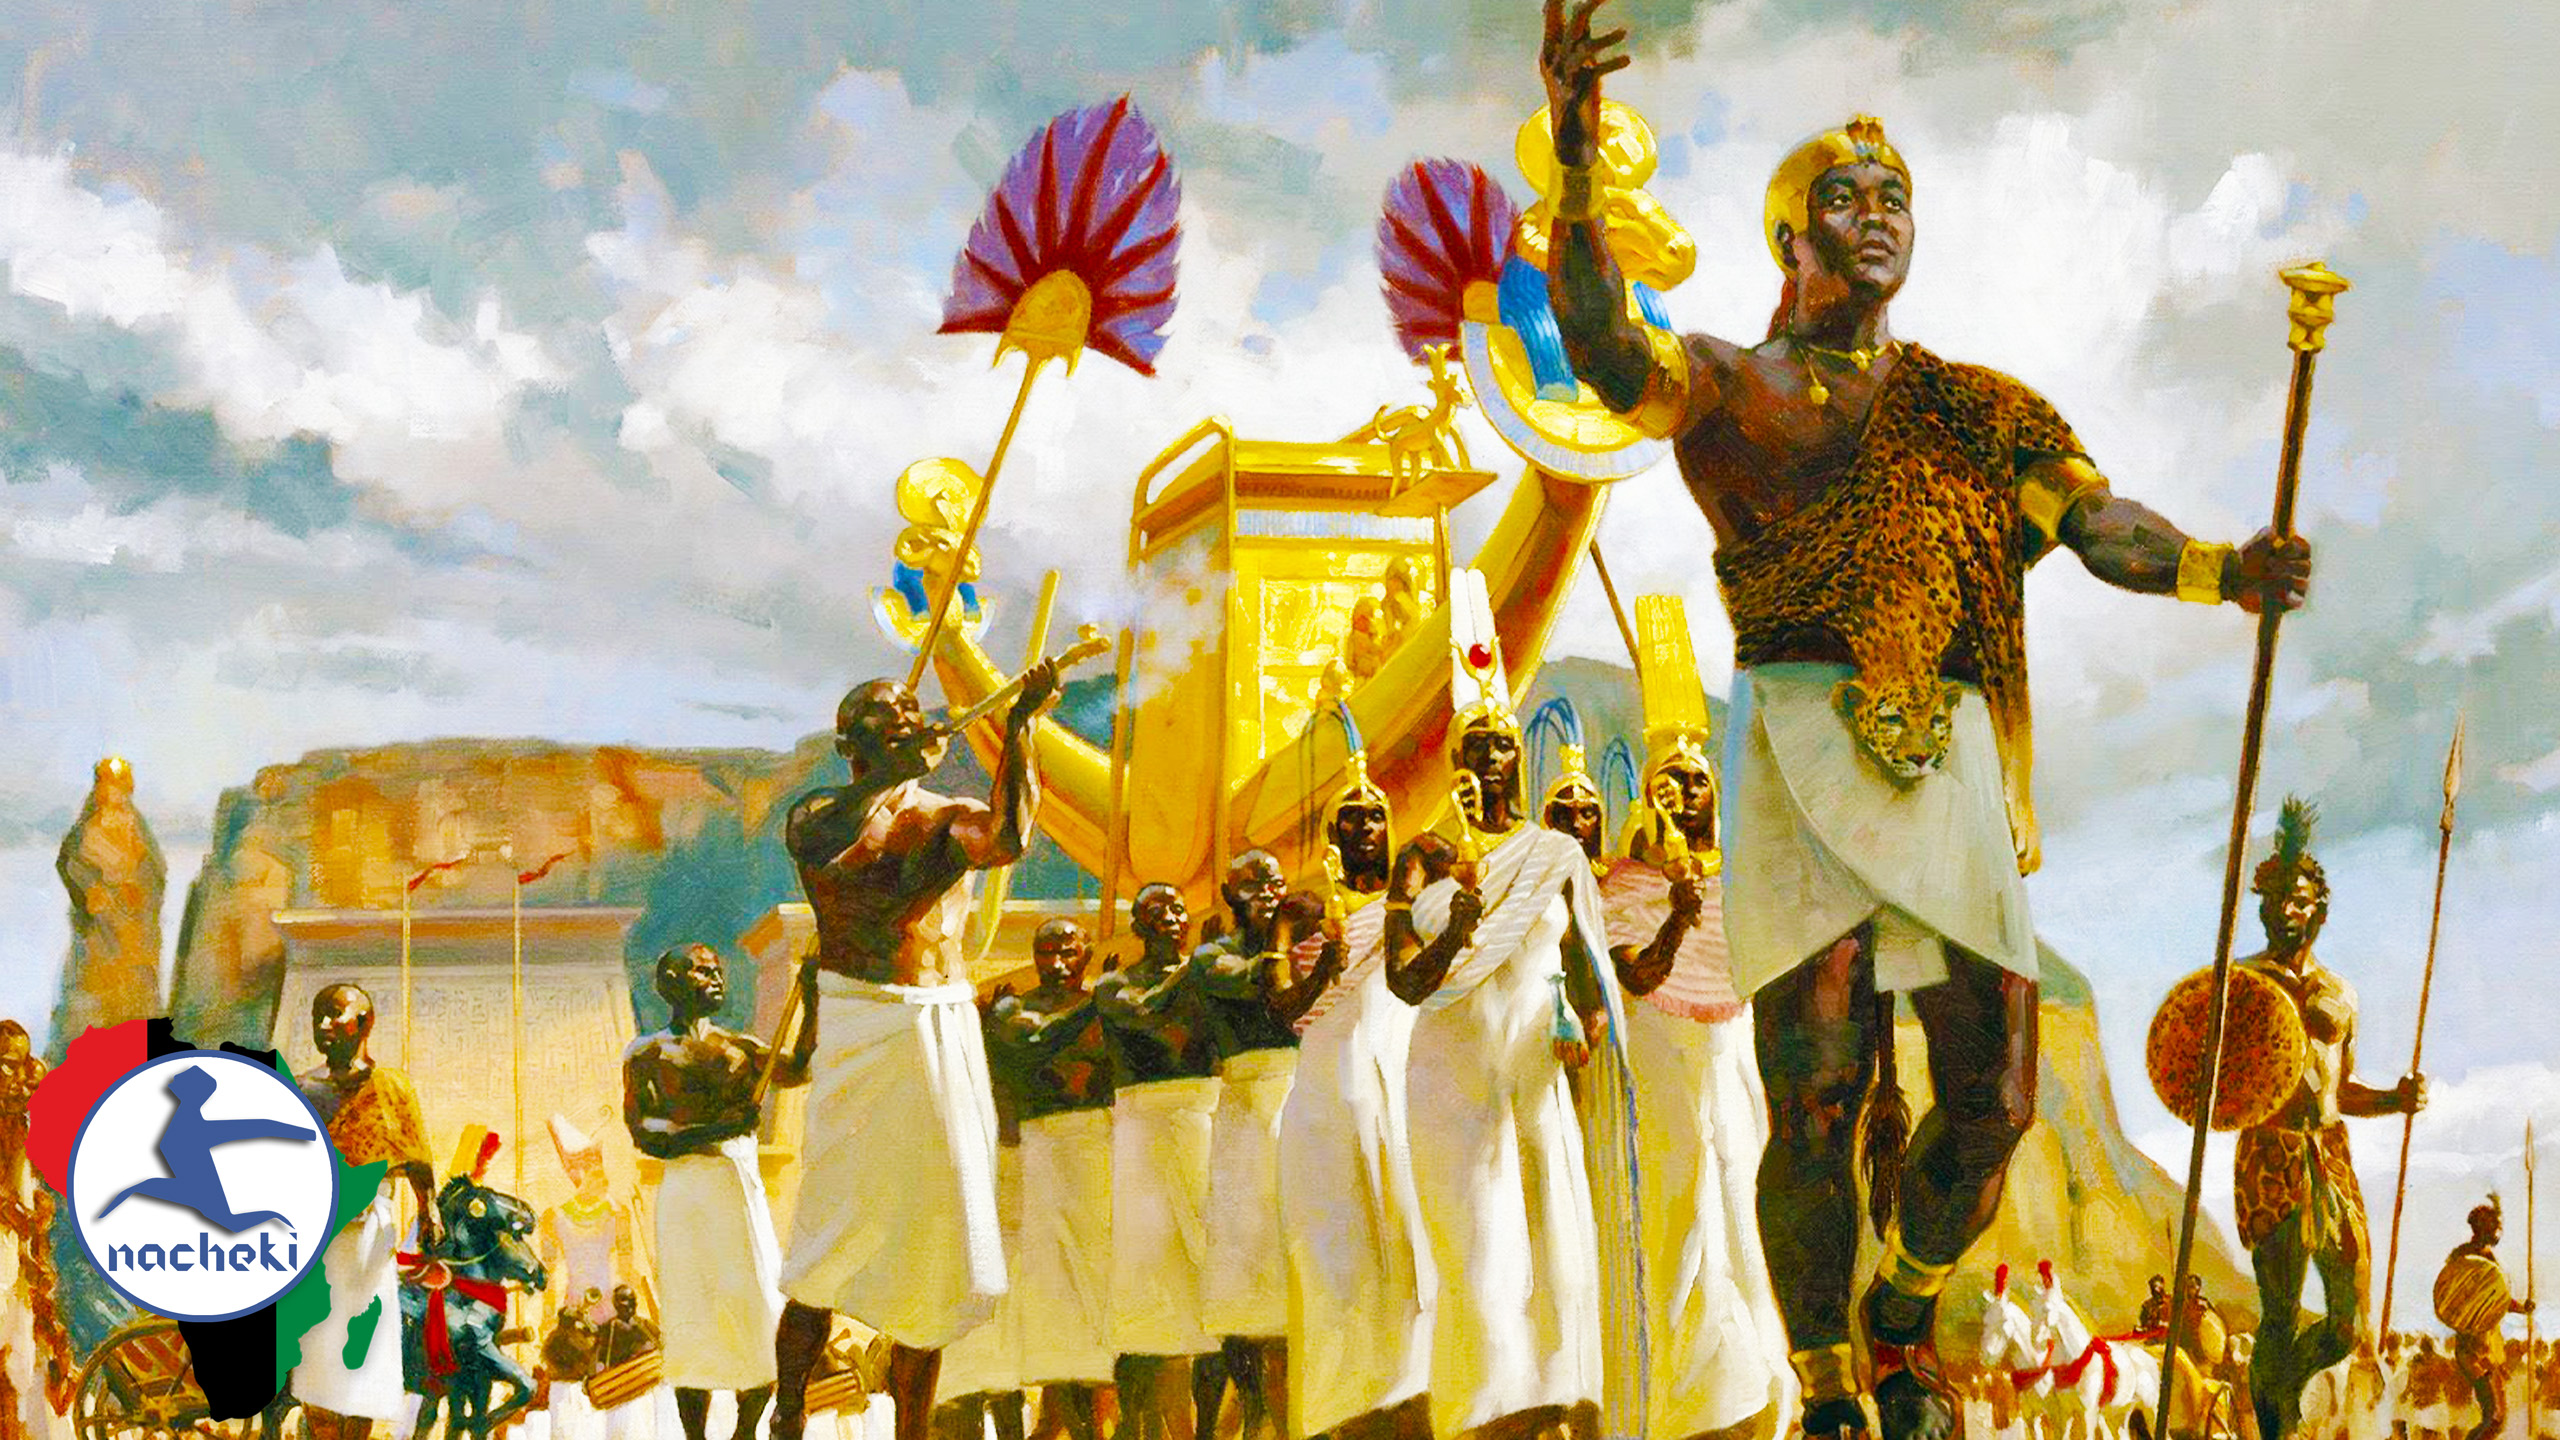 What Did Ancient Egyptians & Egypt Look Like? Find Out in Today's Africa's Ancient History